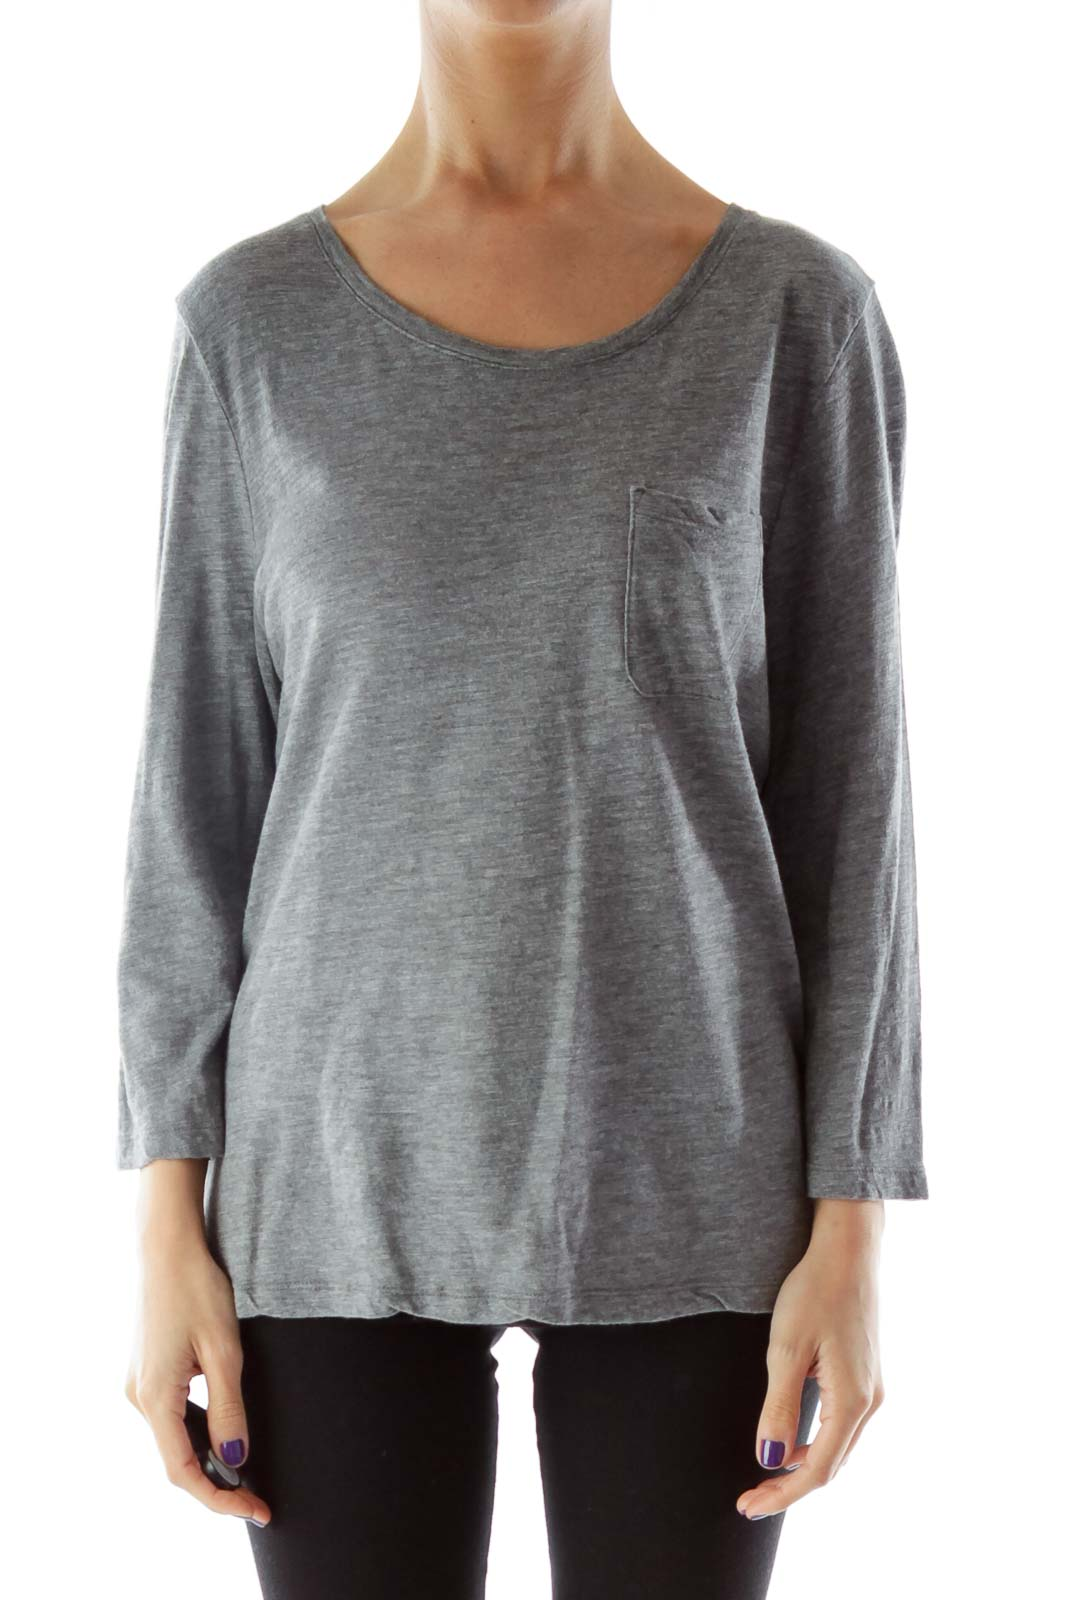 Gray 3/4 Sleeve Top